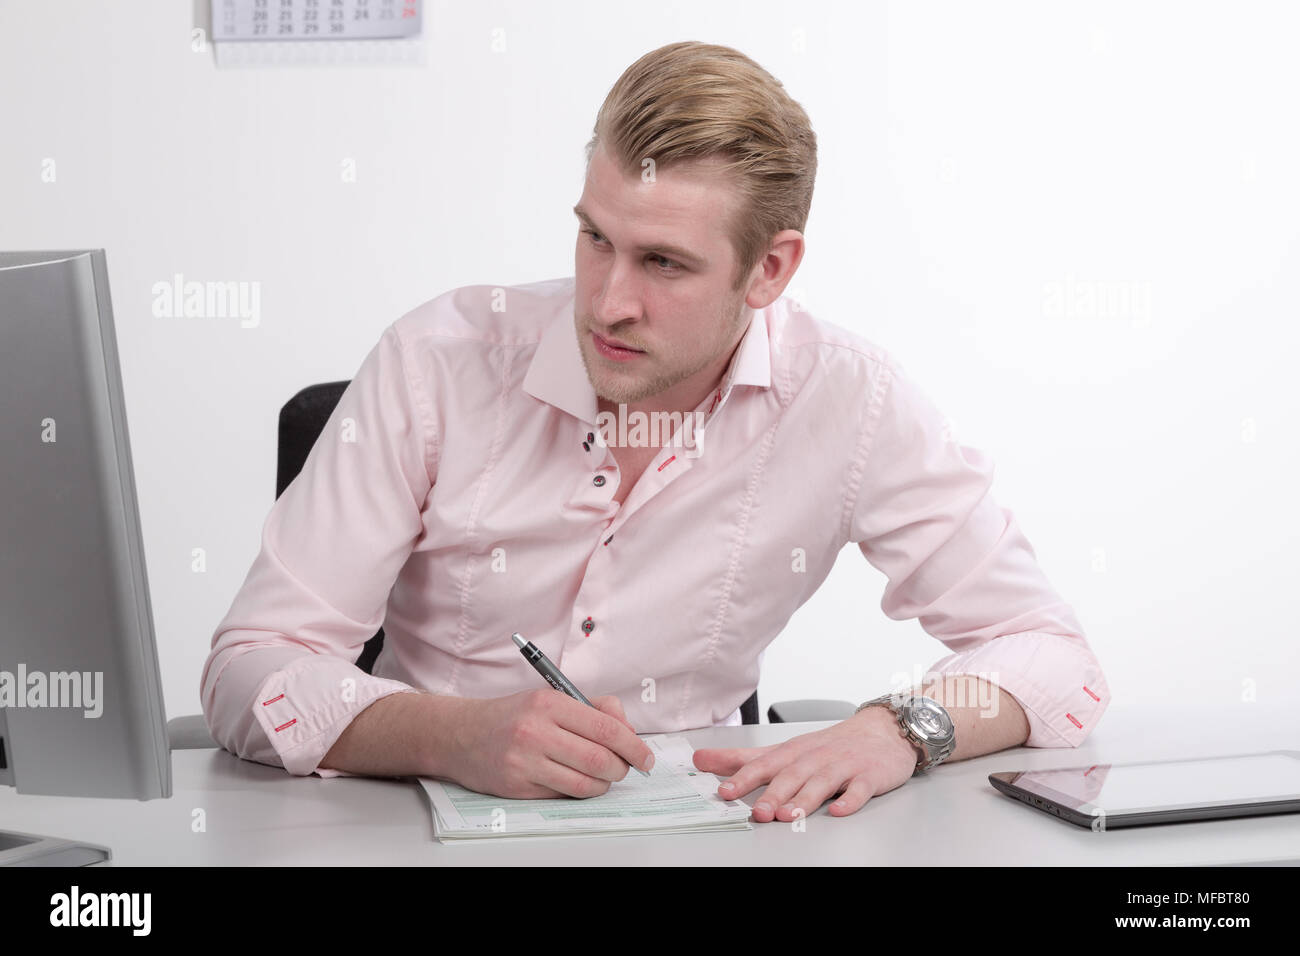 Young man working at desk on paper work - Stock Image